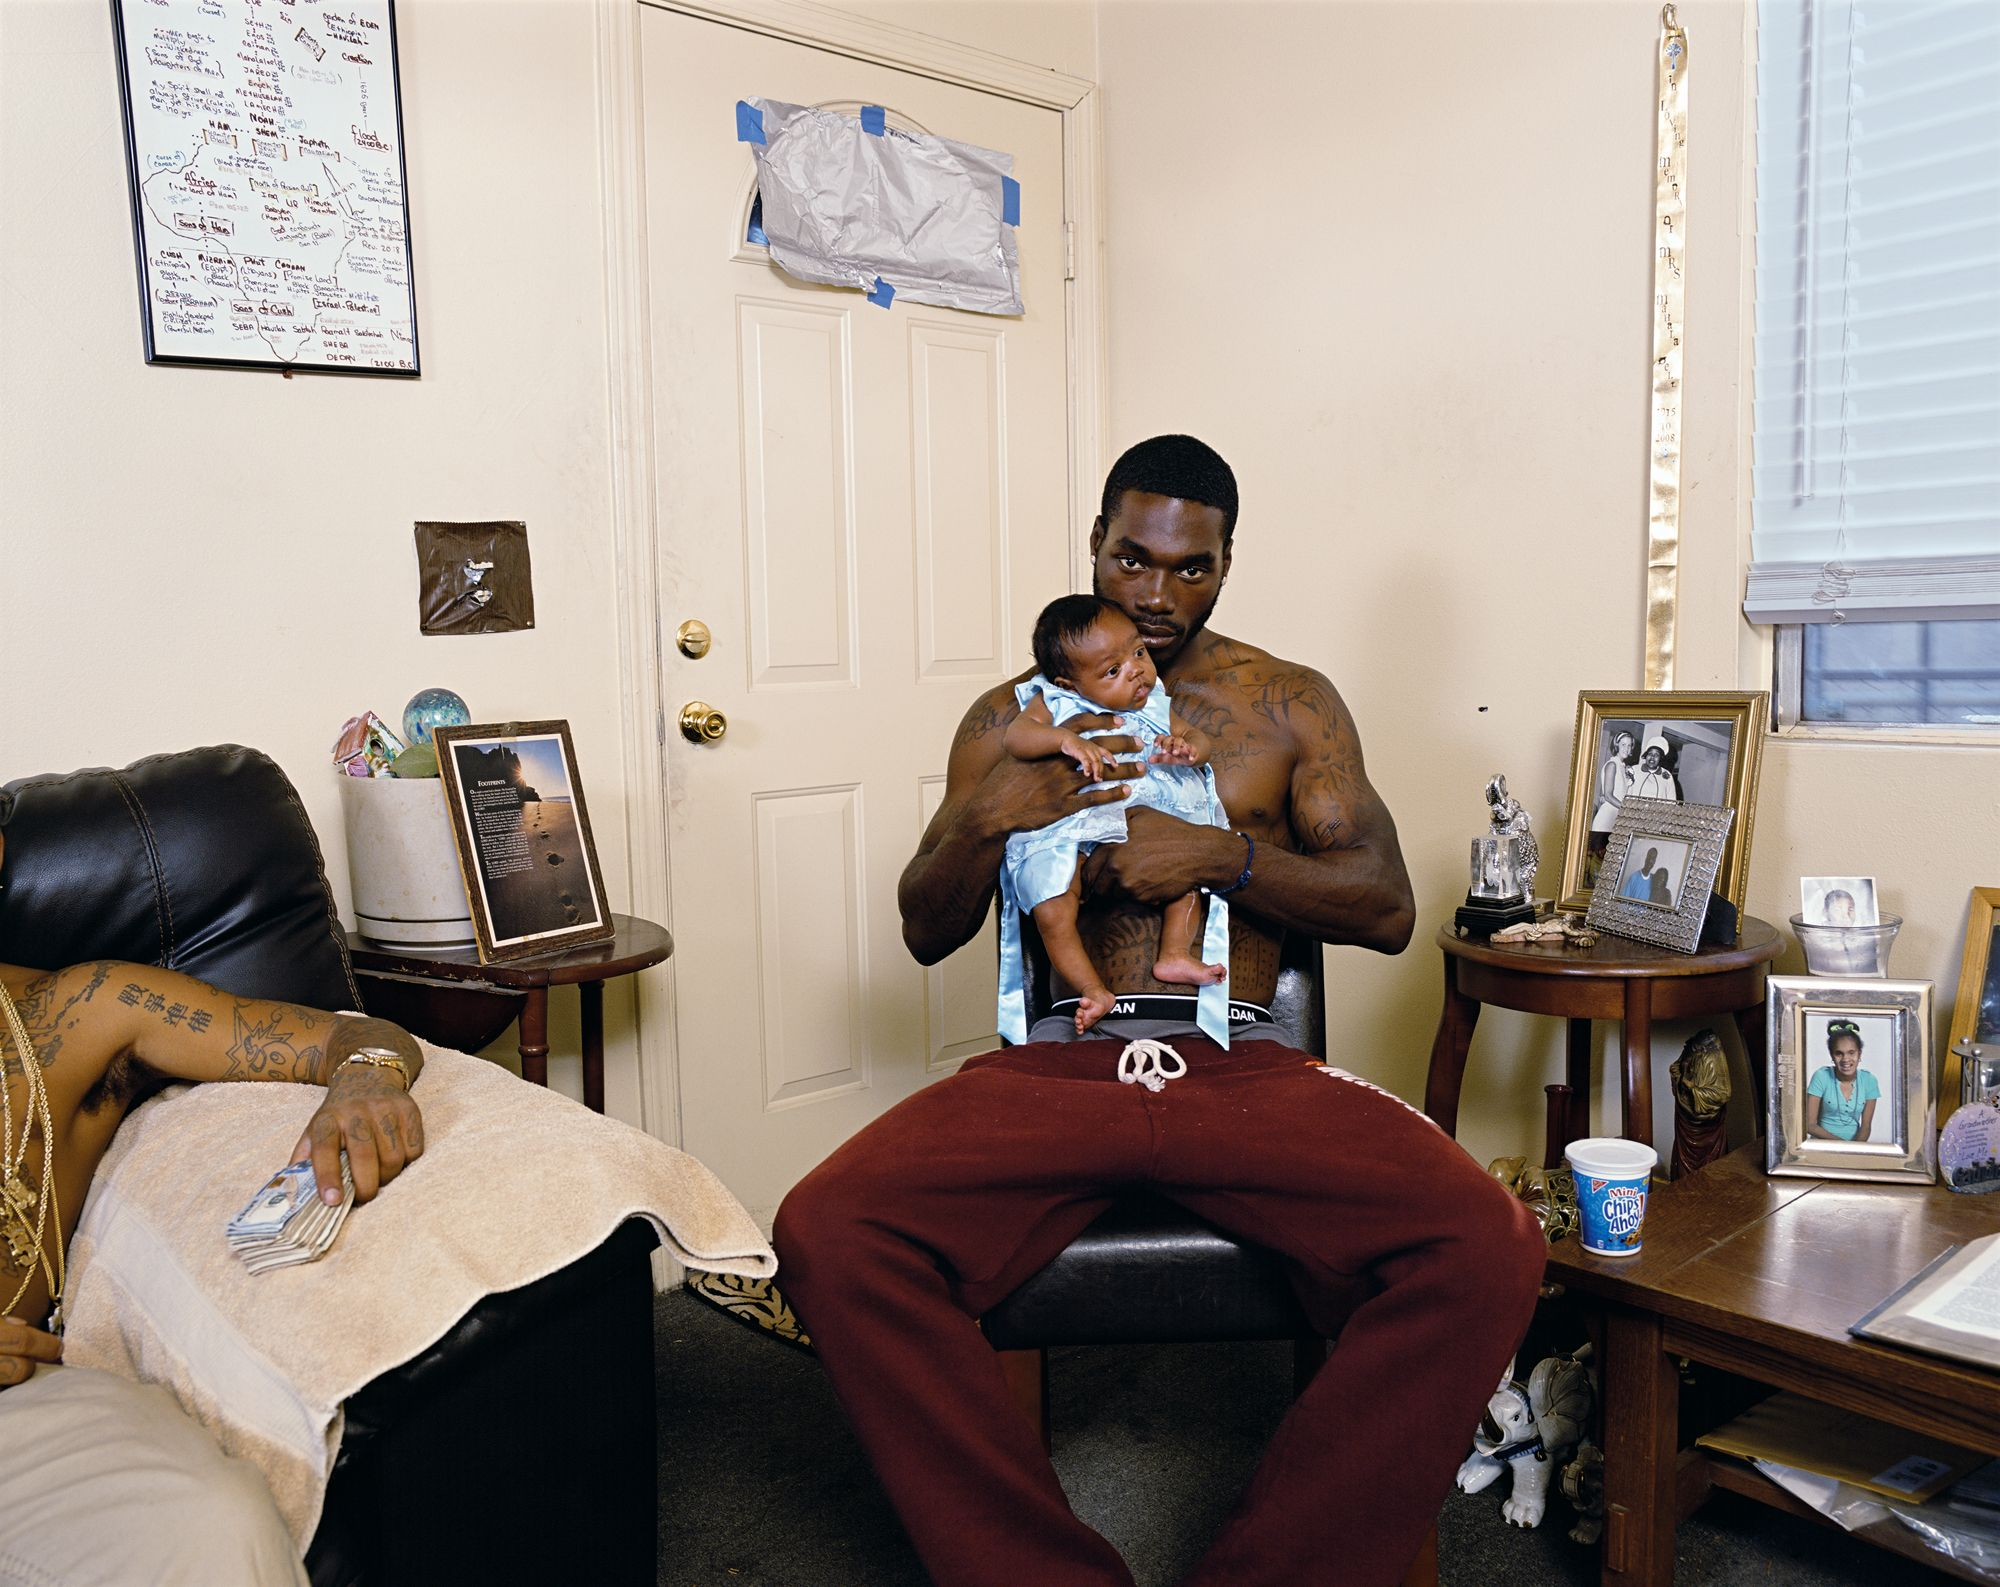 Sons of Cush, 2016 © Deana Lawson. Courtesy of the artist and Sikkema Jenkins & Co., New York